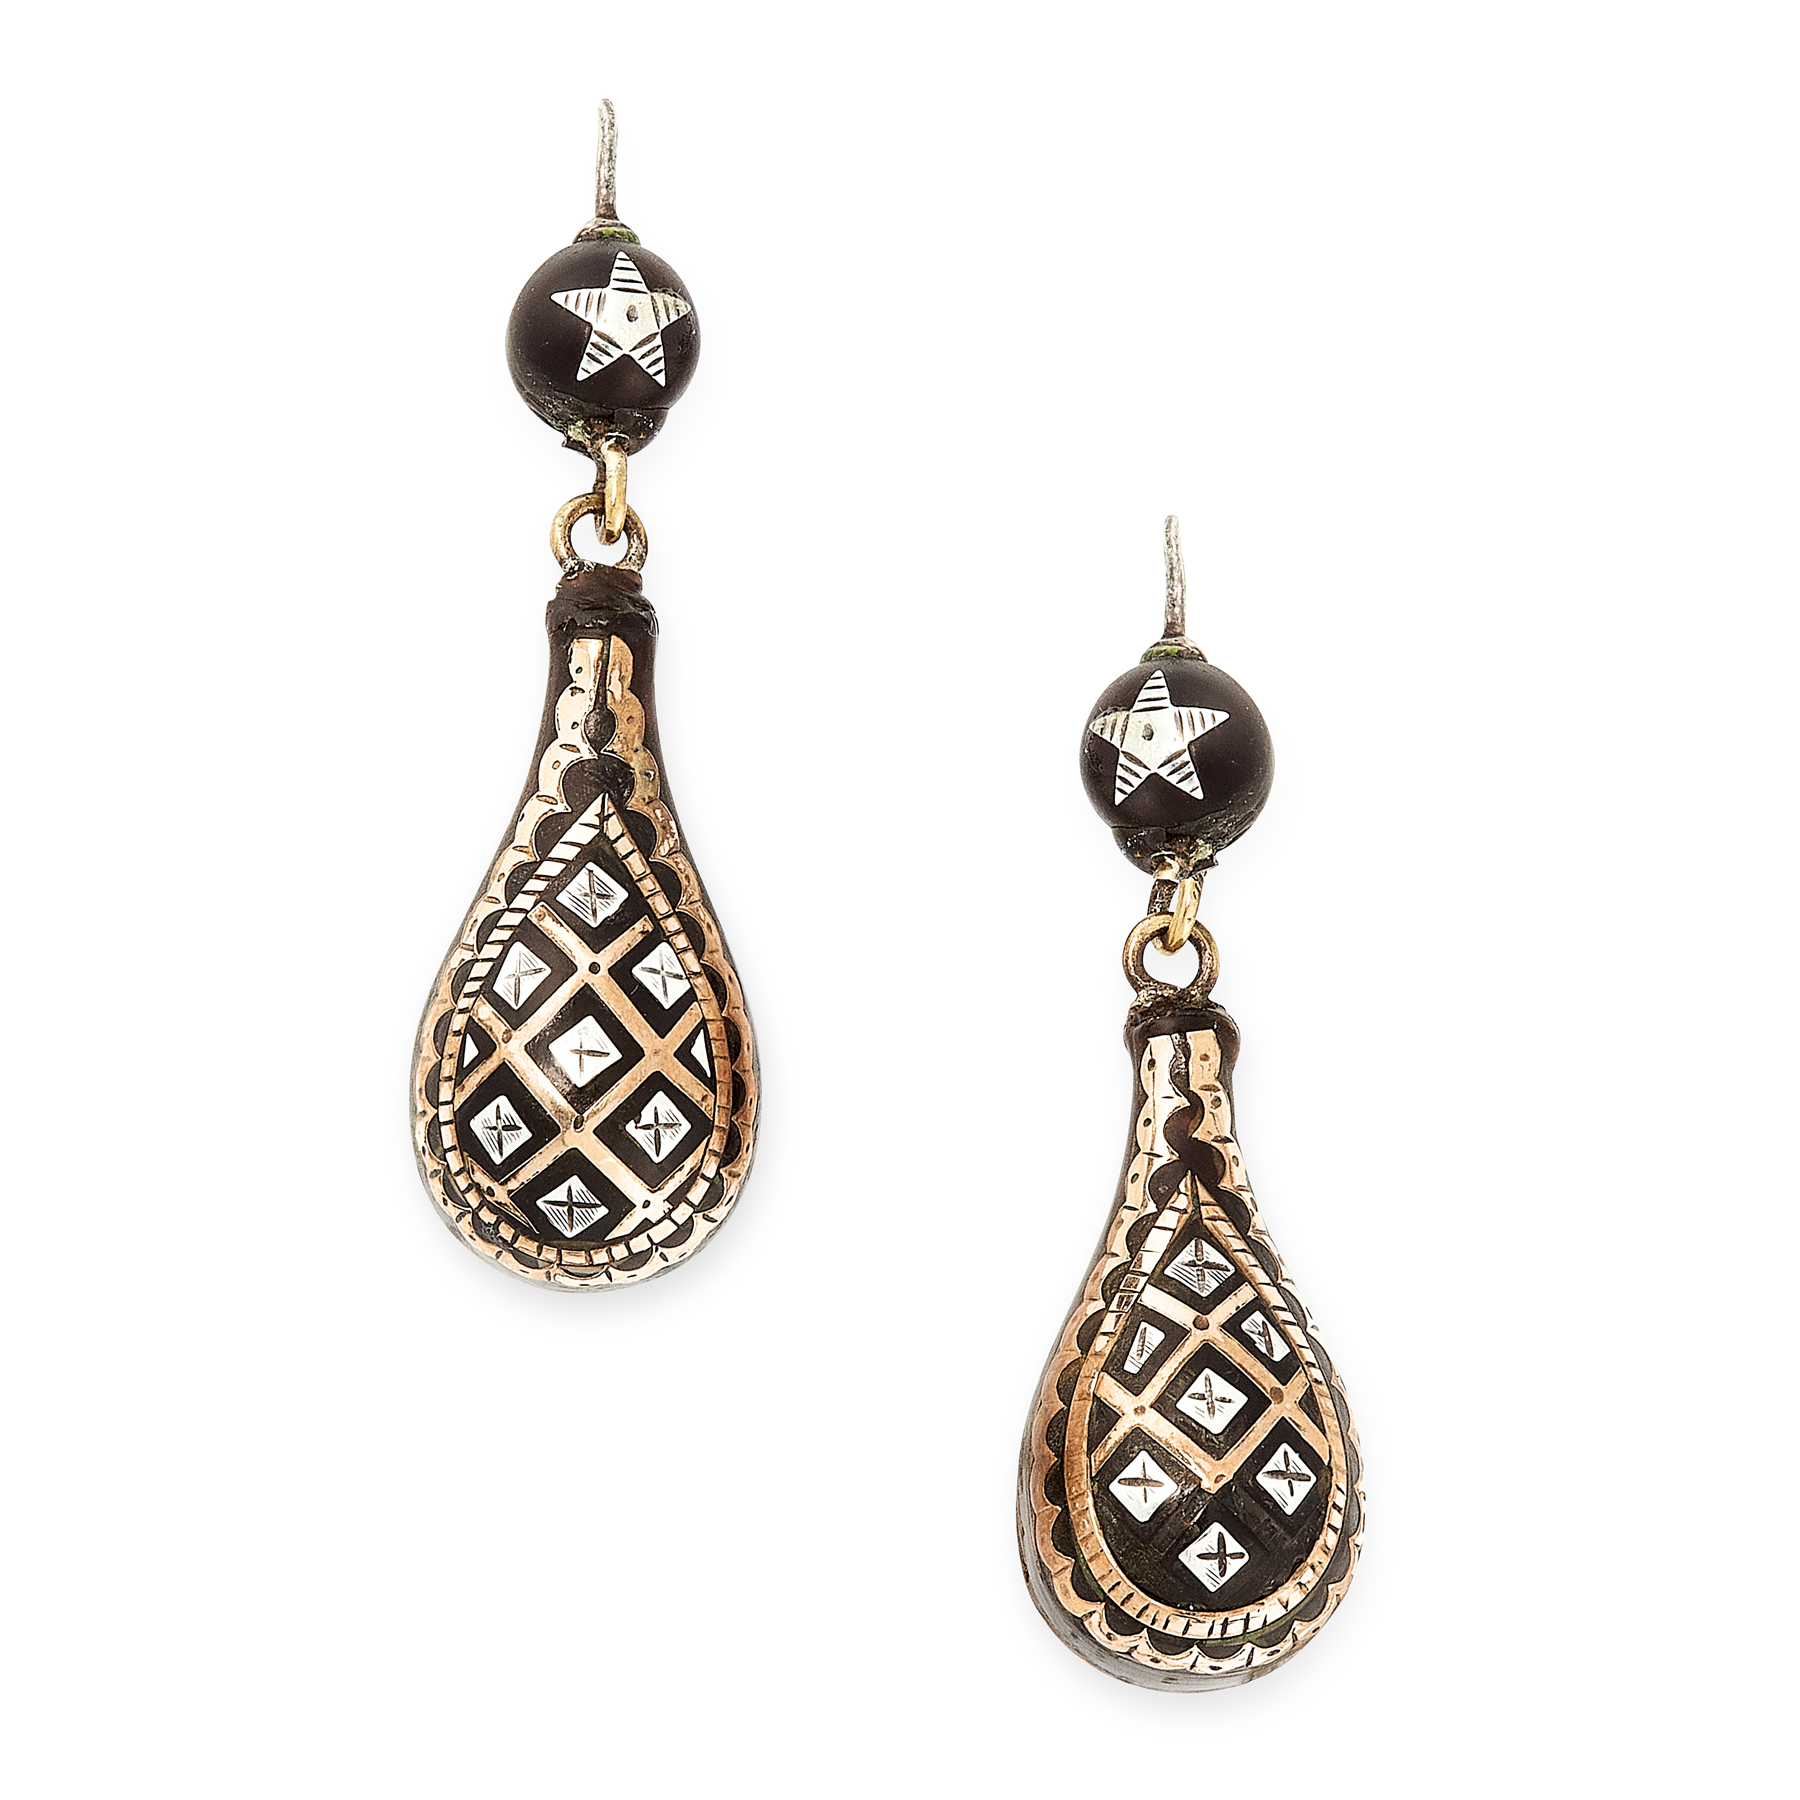 A PAIR OF ANTIQUE PIQUE TORTOISESHELL DROP EARRINGS, 19TH CENTURY in gold, each of tapering form,